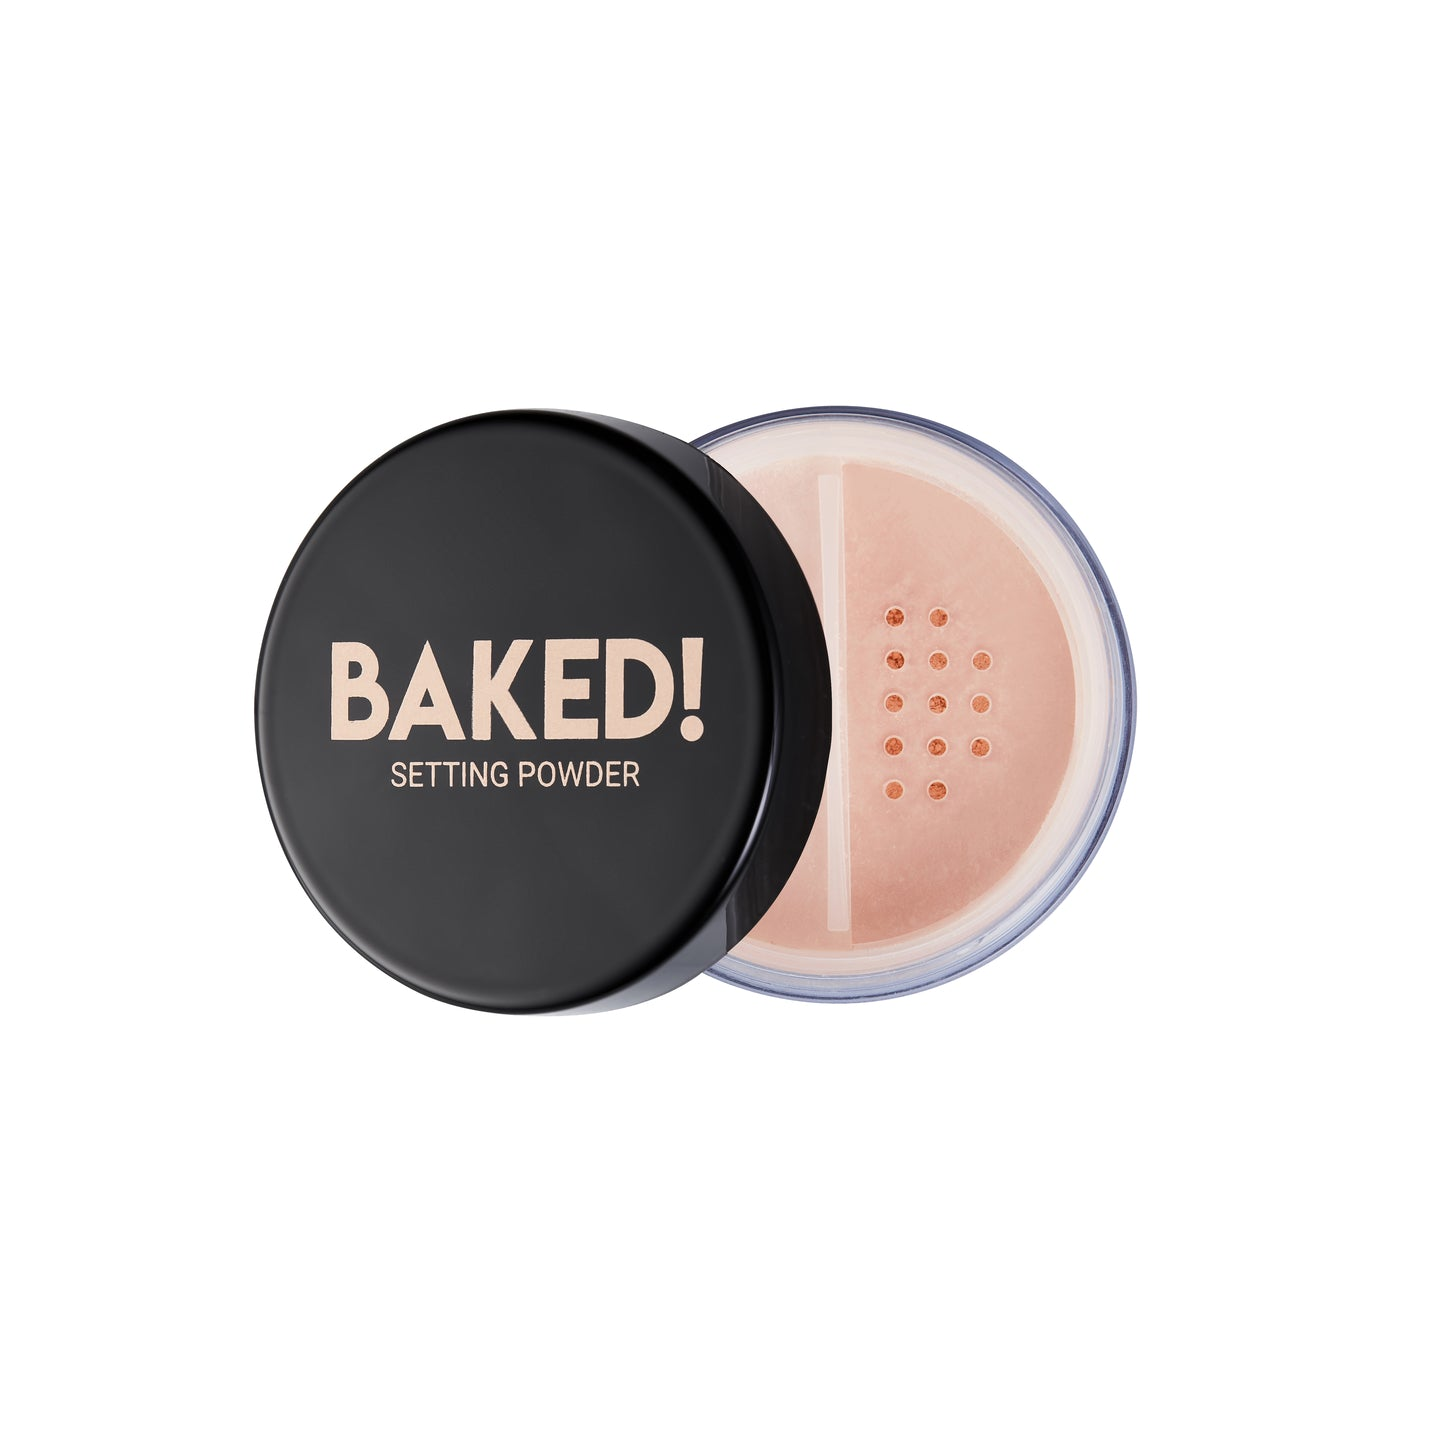 BAKED! Setting Powder (Banana Duo)